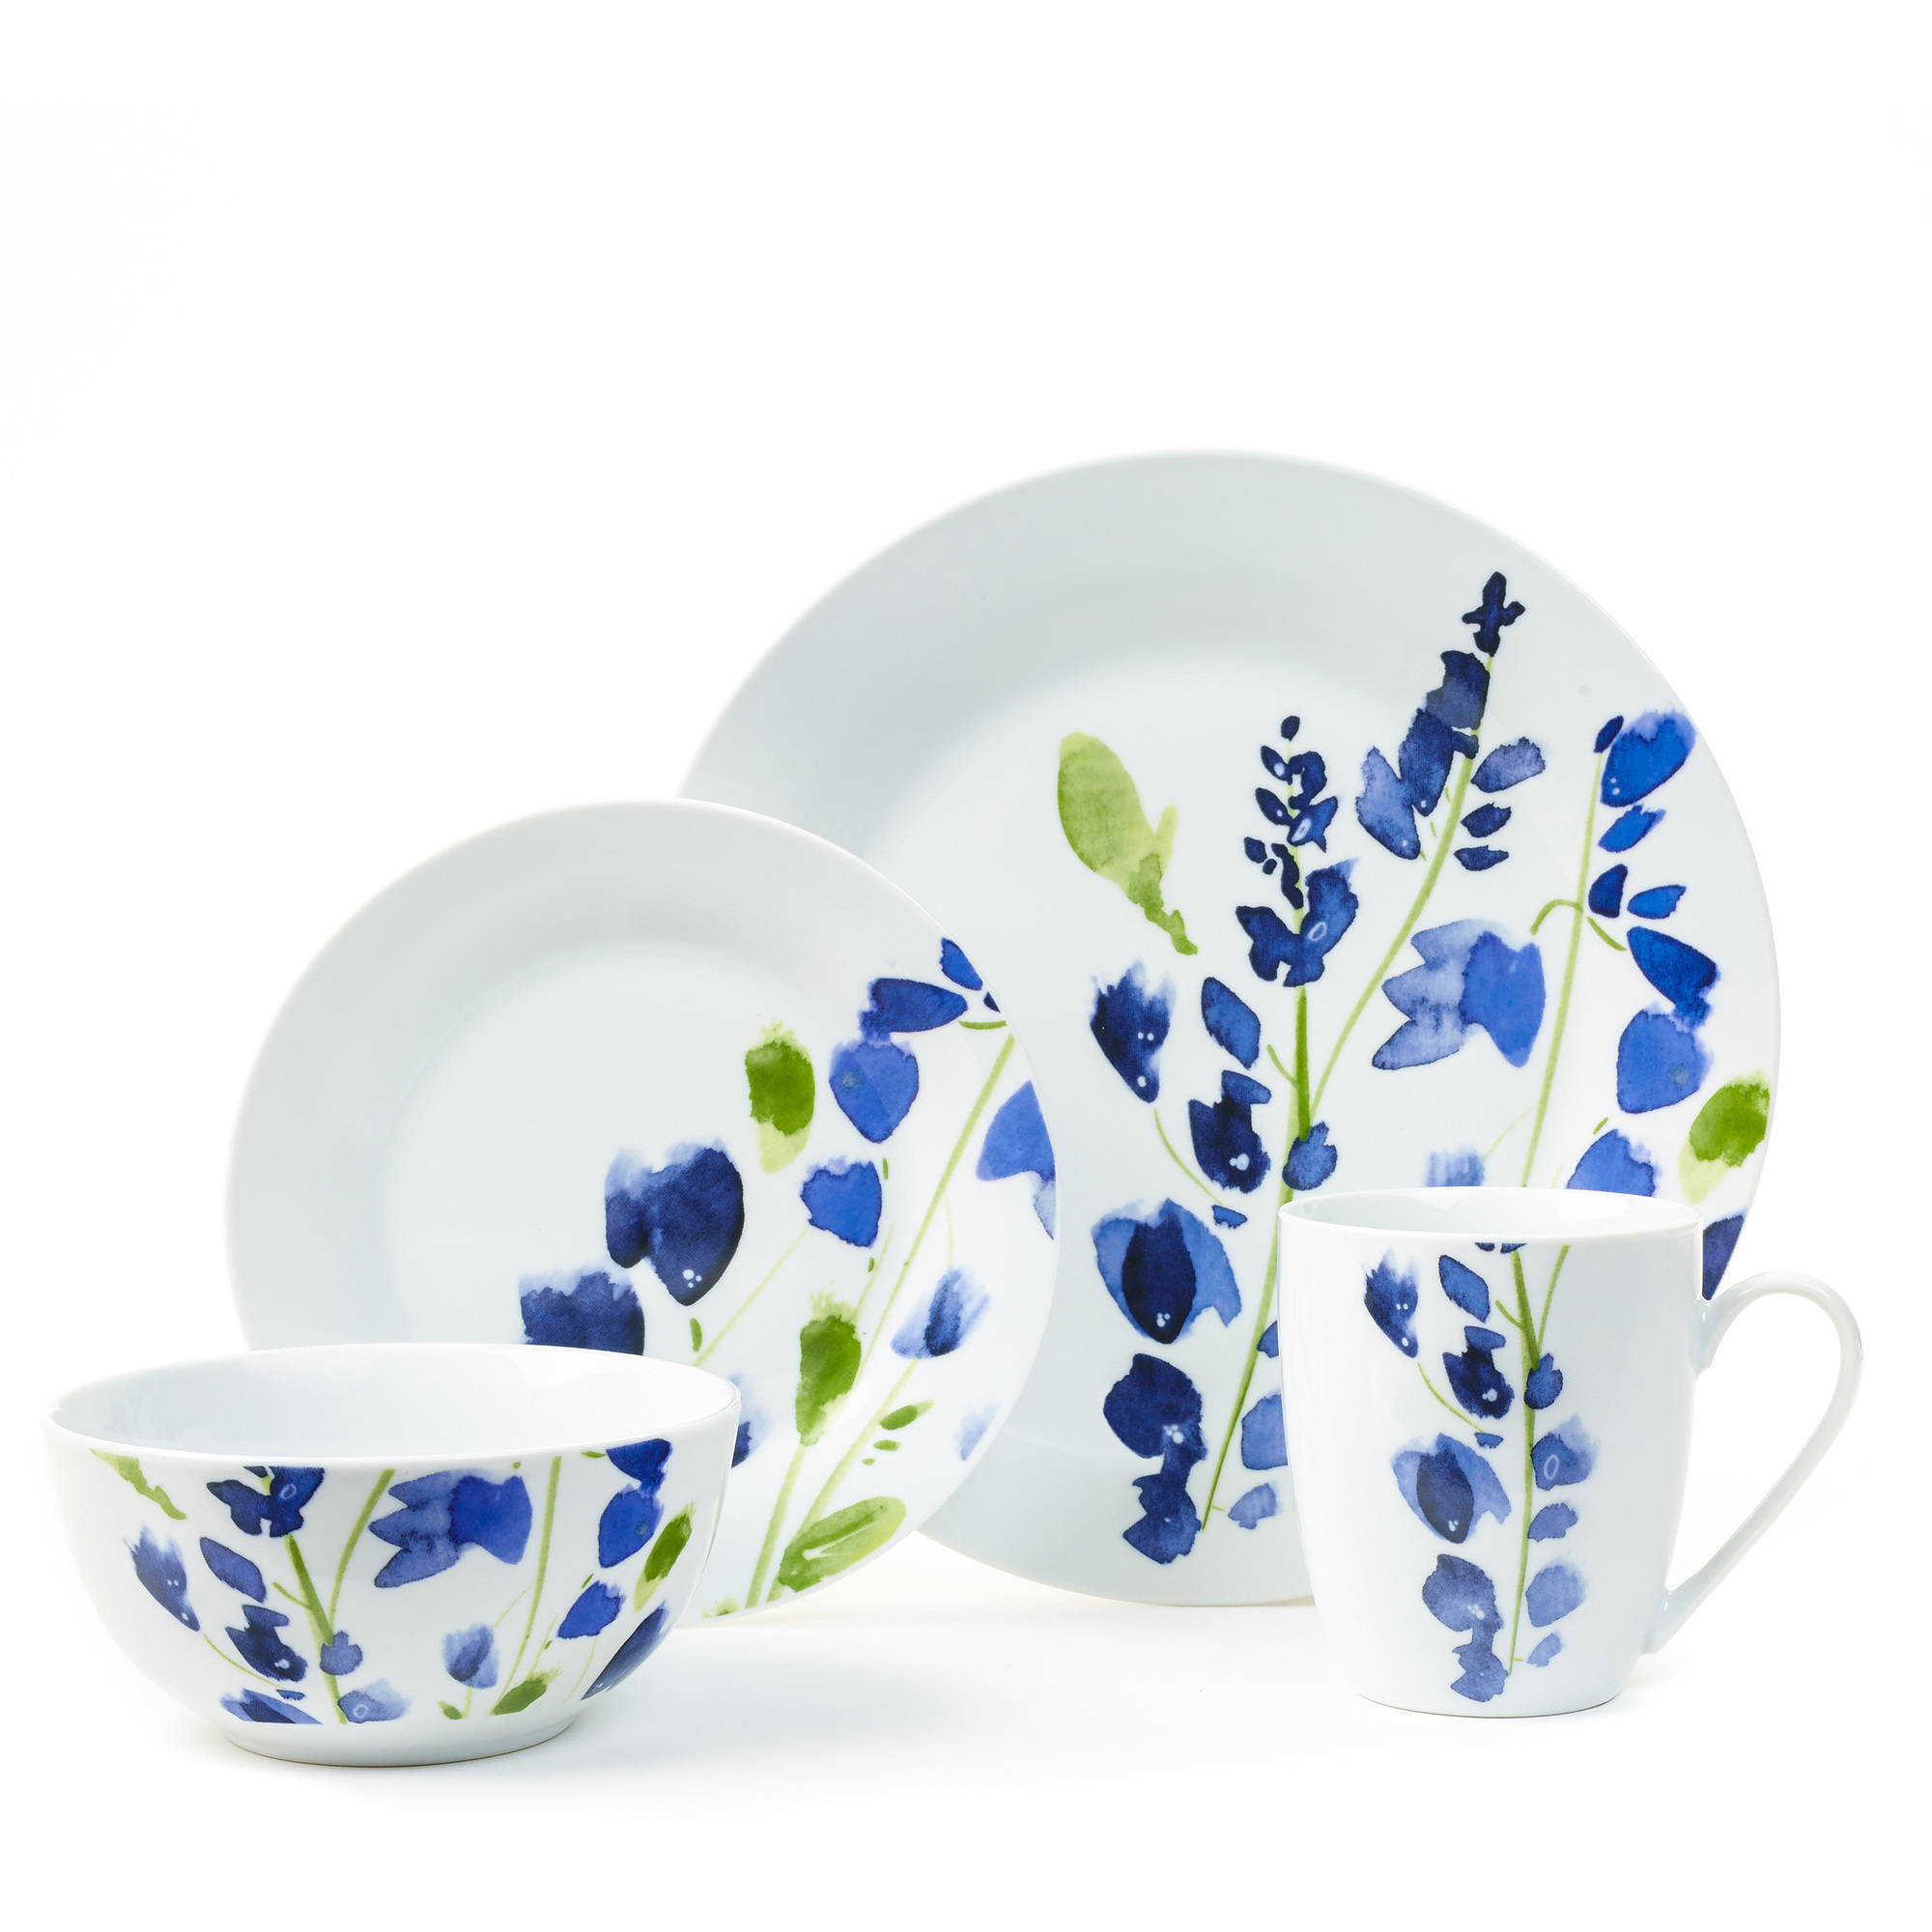 Placemate My Romantic Blue 16-Piece Porcelain ...  sc 1 st  eBay & Placemate My Romantic Blue 16-Piece Porcelain Dinnerware Set | eBay